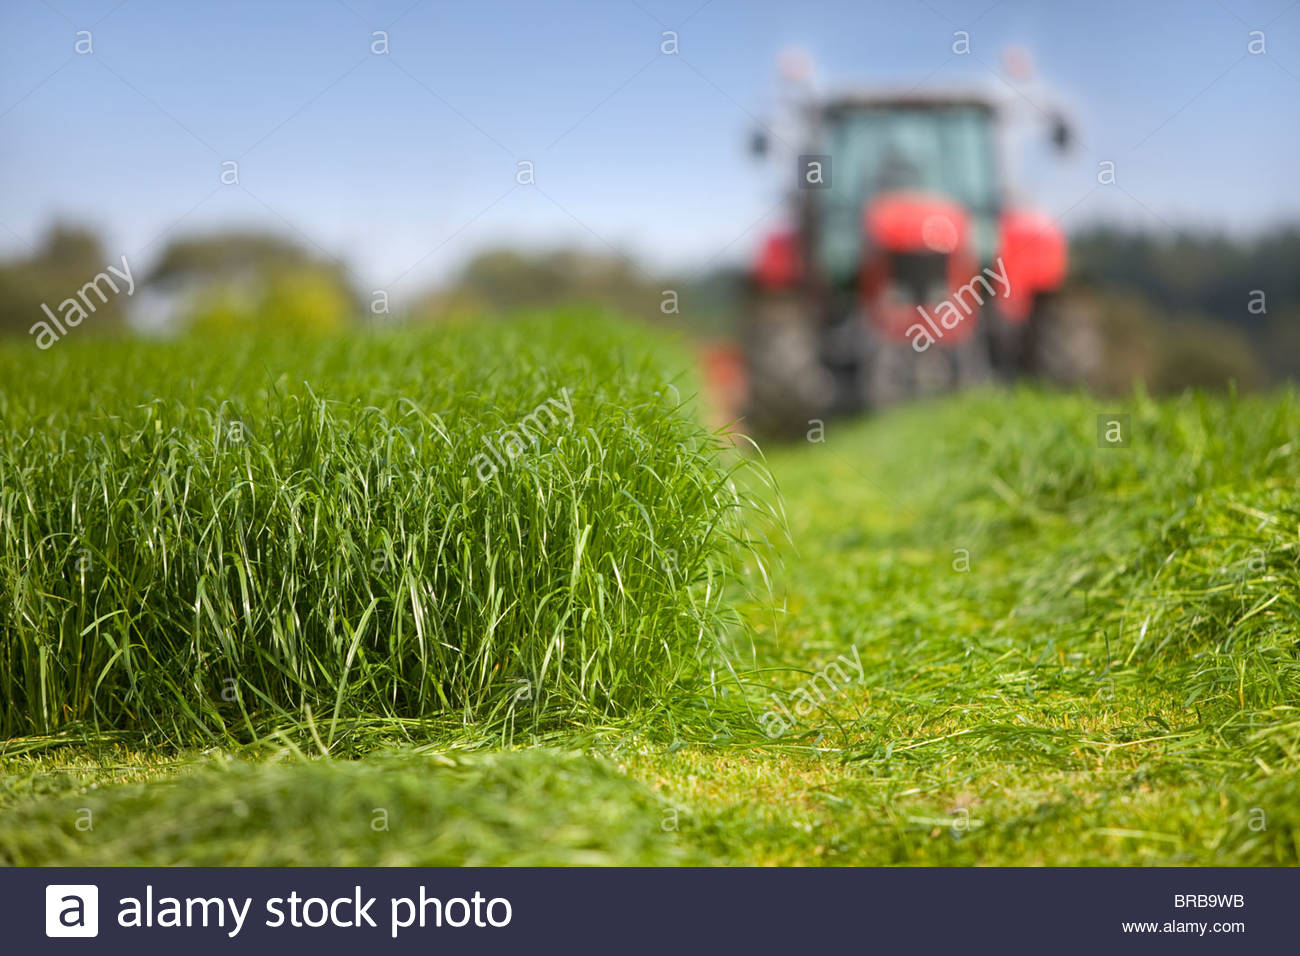 Tractor cutting silage in farm field - Stock Image